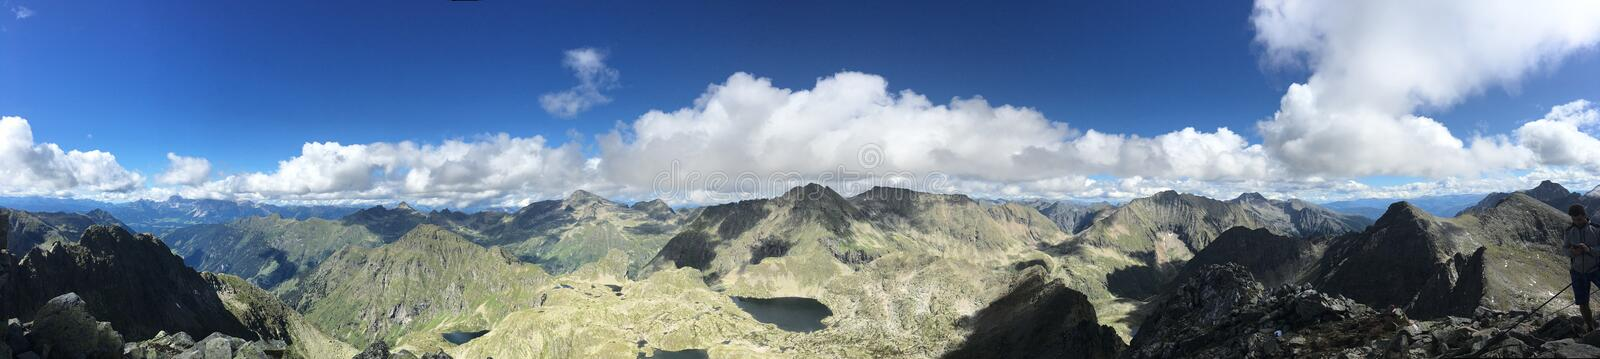 Panorama Photo of Mountains stock images